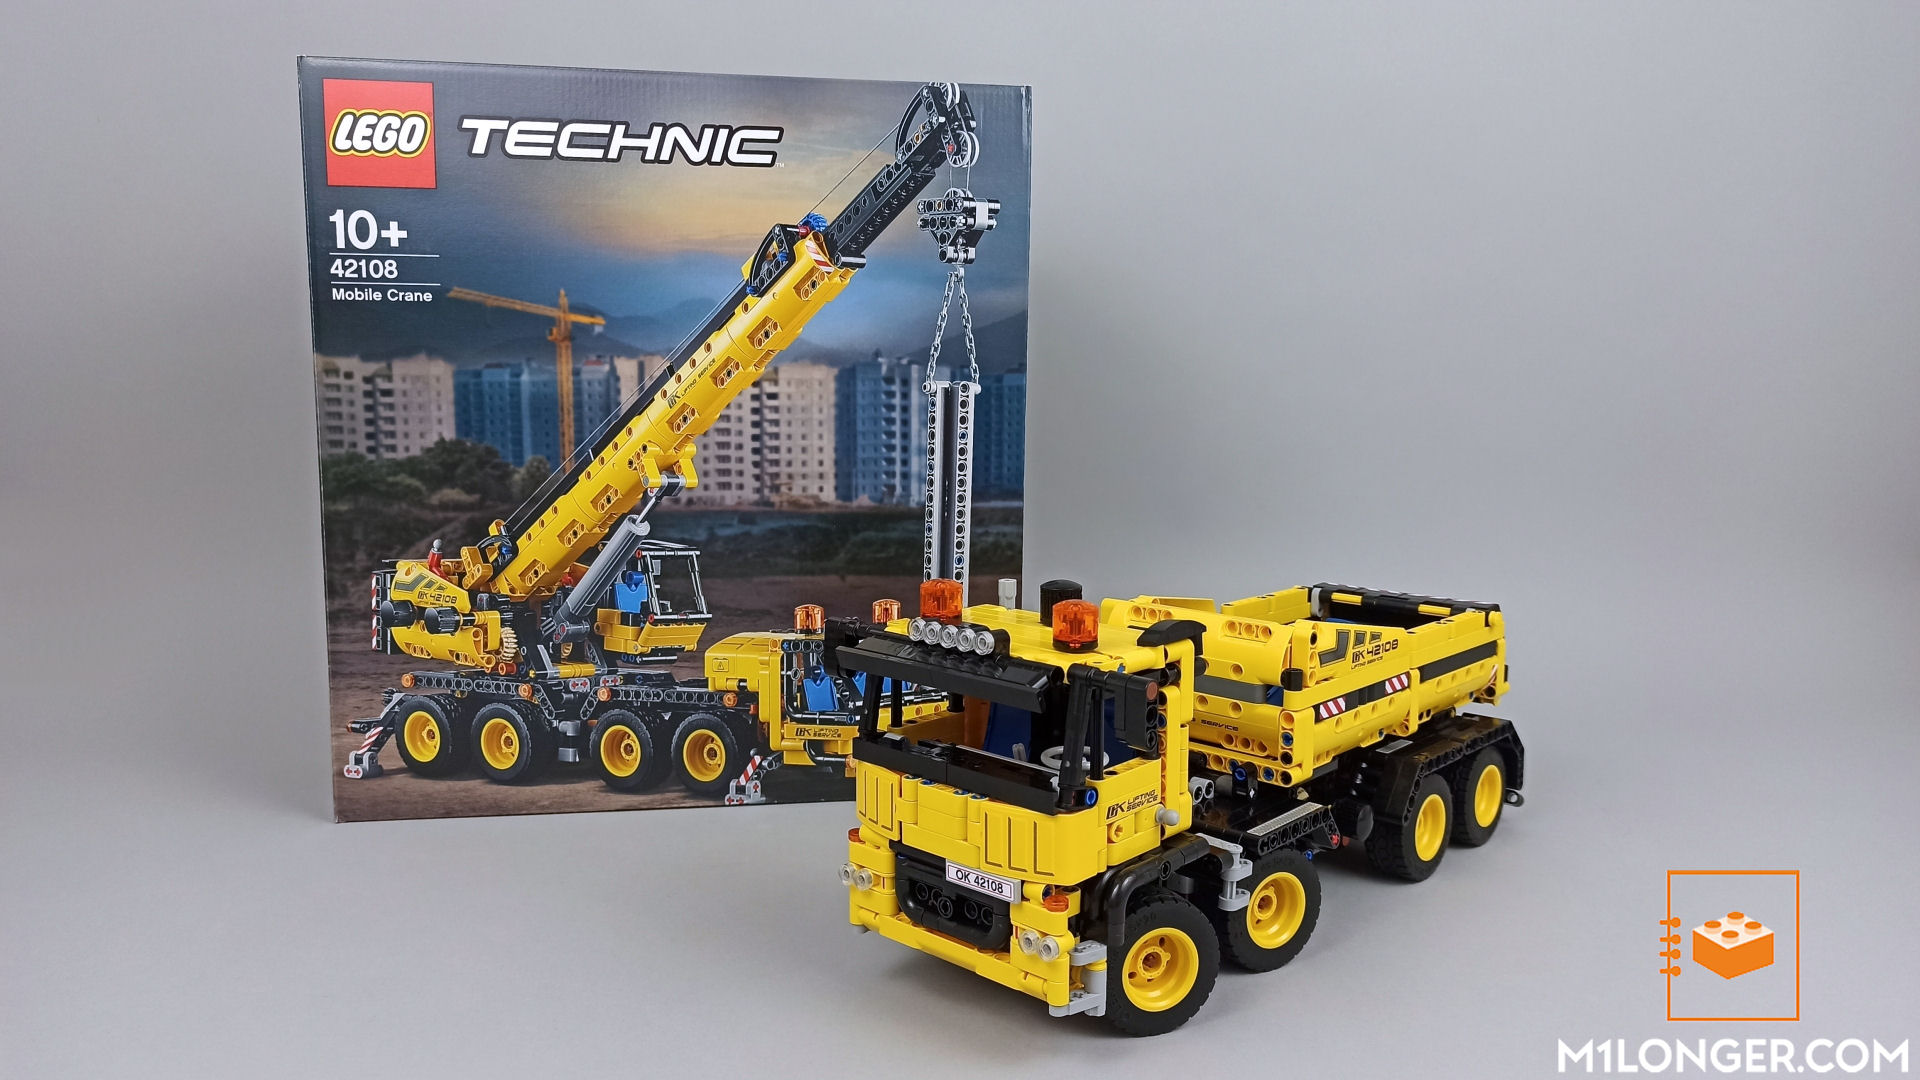 Lego Moc 42108 Roll Off Truck By M Longer Rebrickable Build With Lego